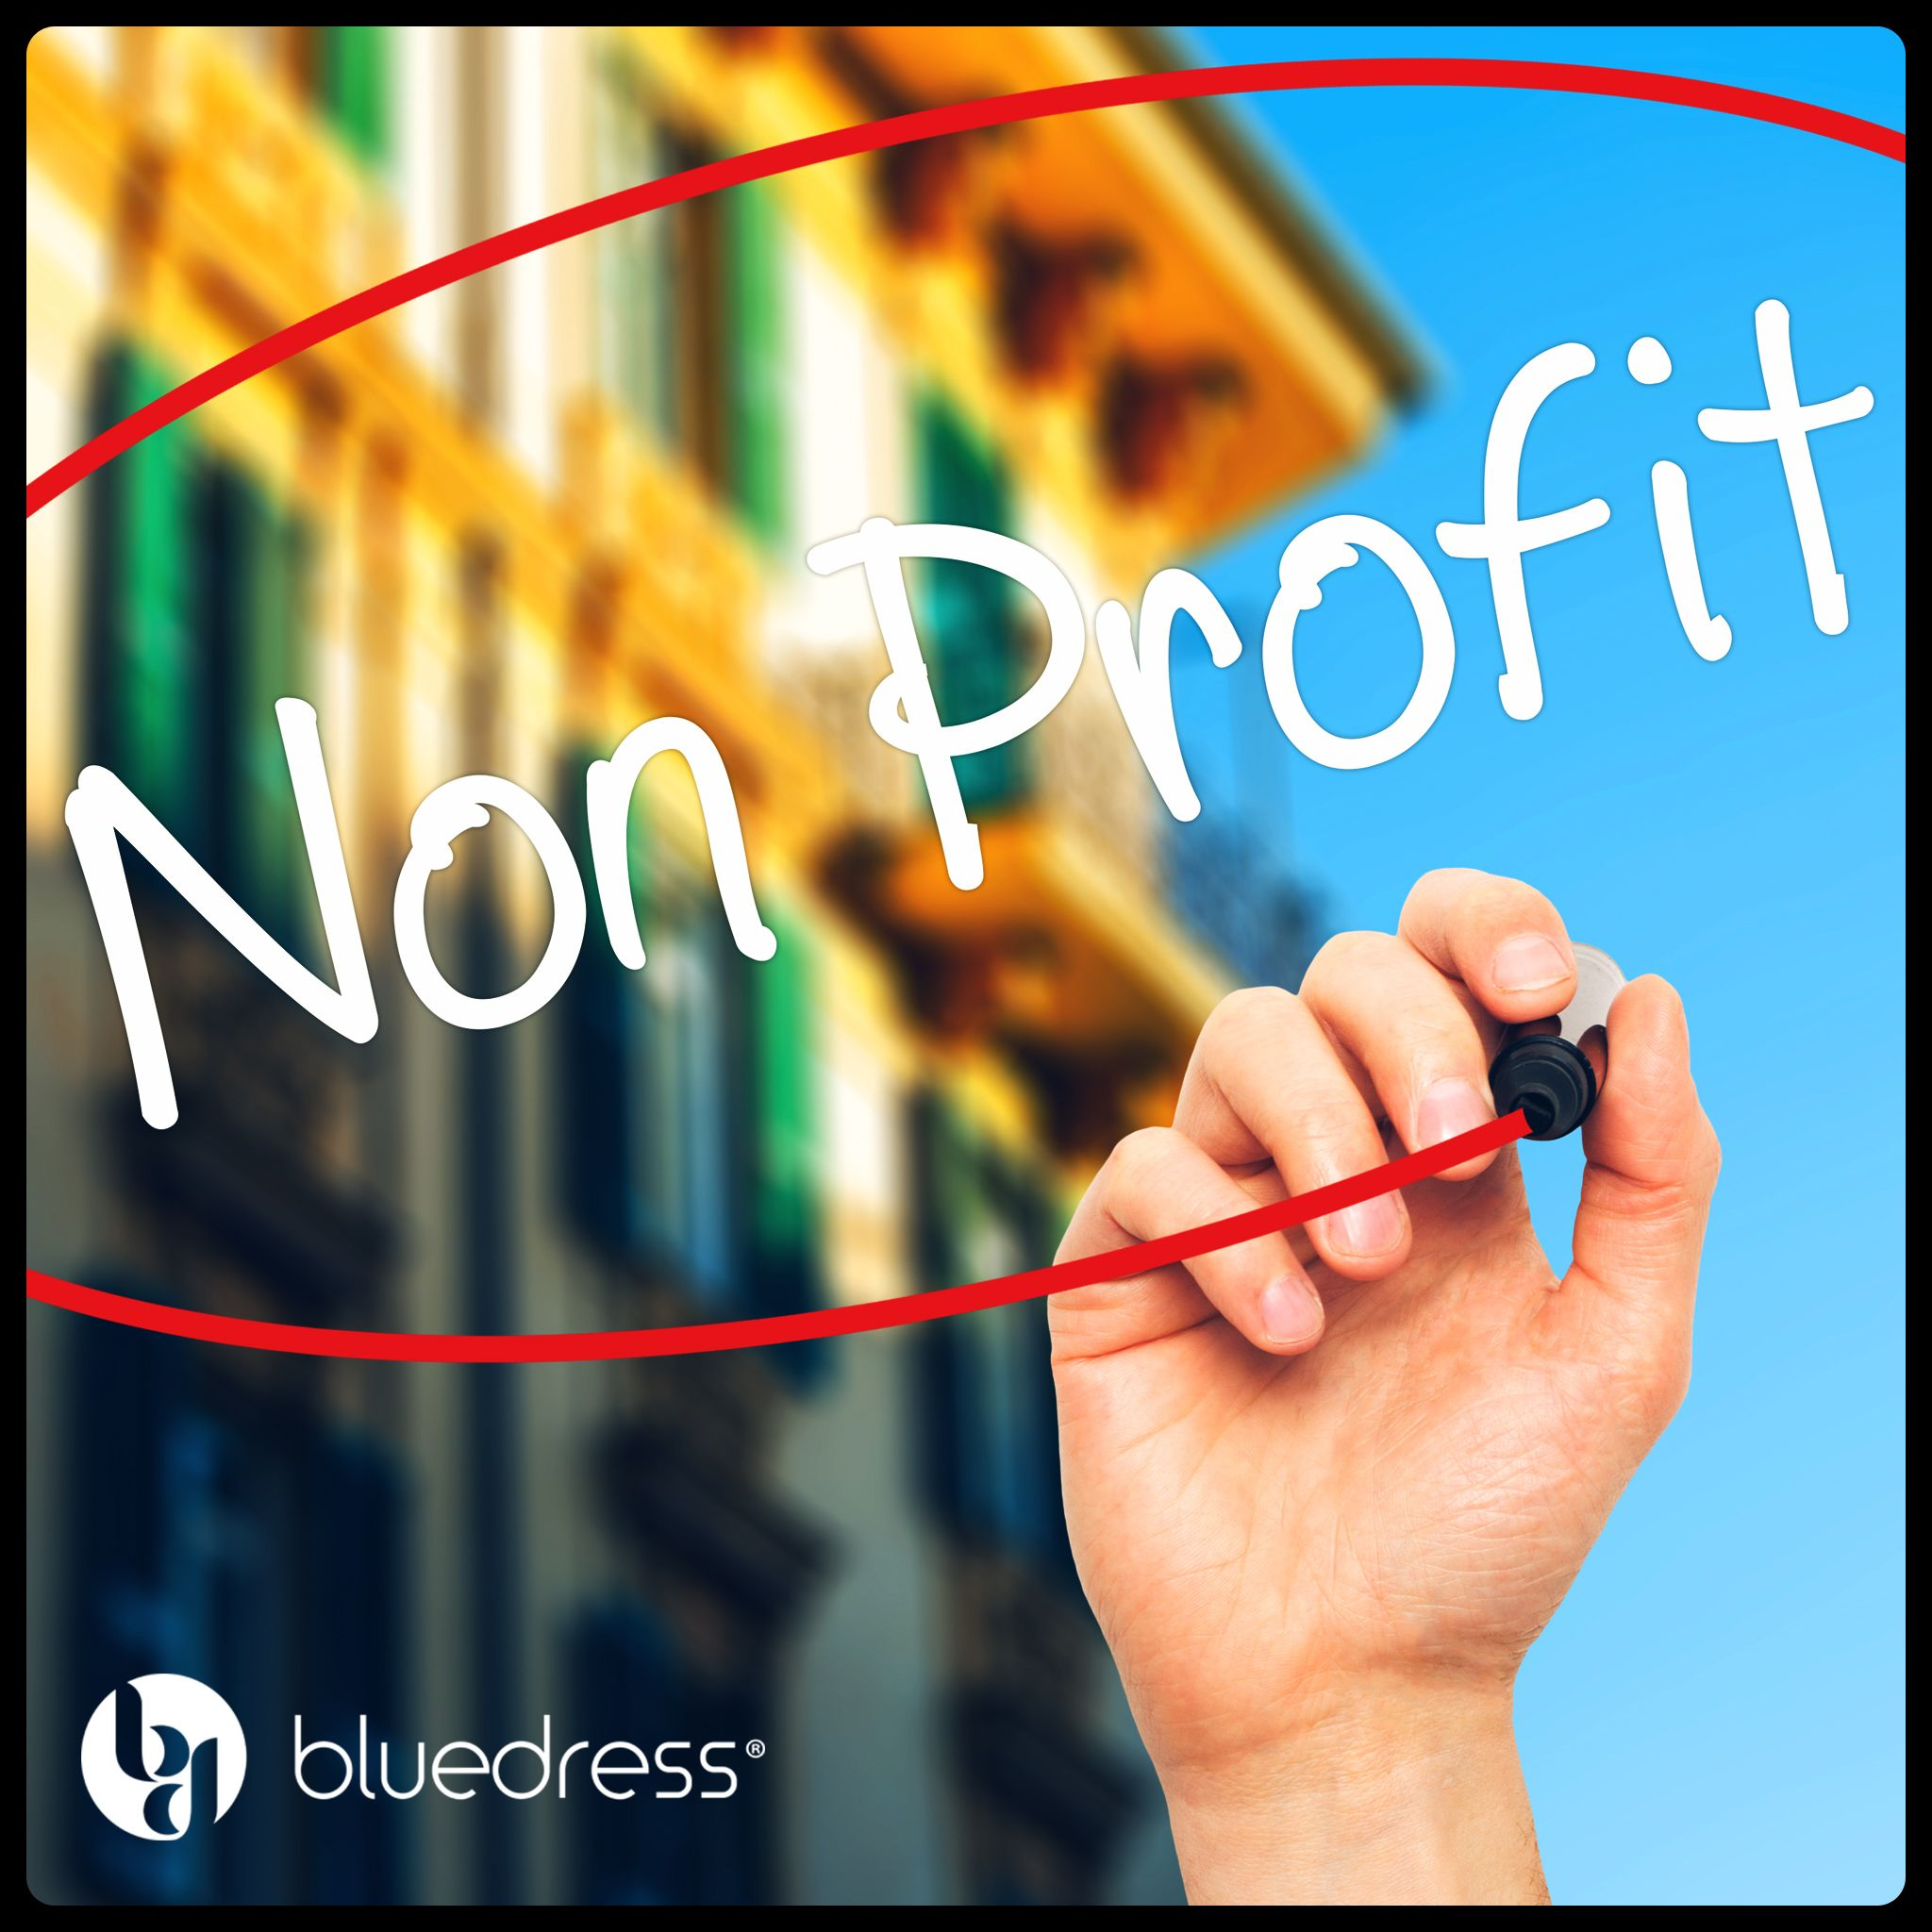 Despite the genuinely inspiring work that many nonprofits do, they also have their fair share of challenges in the #OnlineMarketing world.  Can Non-Profits look to inbound marketing to get their message across? Of course, they can! If you're a nonprofit who wants to inspire audiences, check out Hubspot's crash course on how to make the most of inbound marketing! http://ow.ly/VWnw300oXQn  Visit http://www.bluedressinc.com/ to know how you can get a #FlawlessSaturatedInternetPresence!